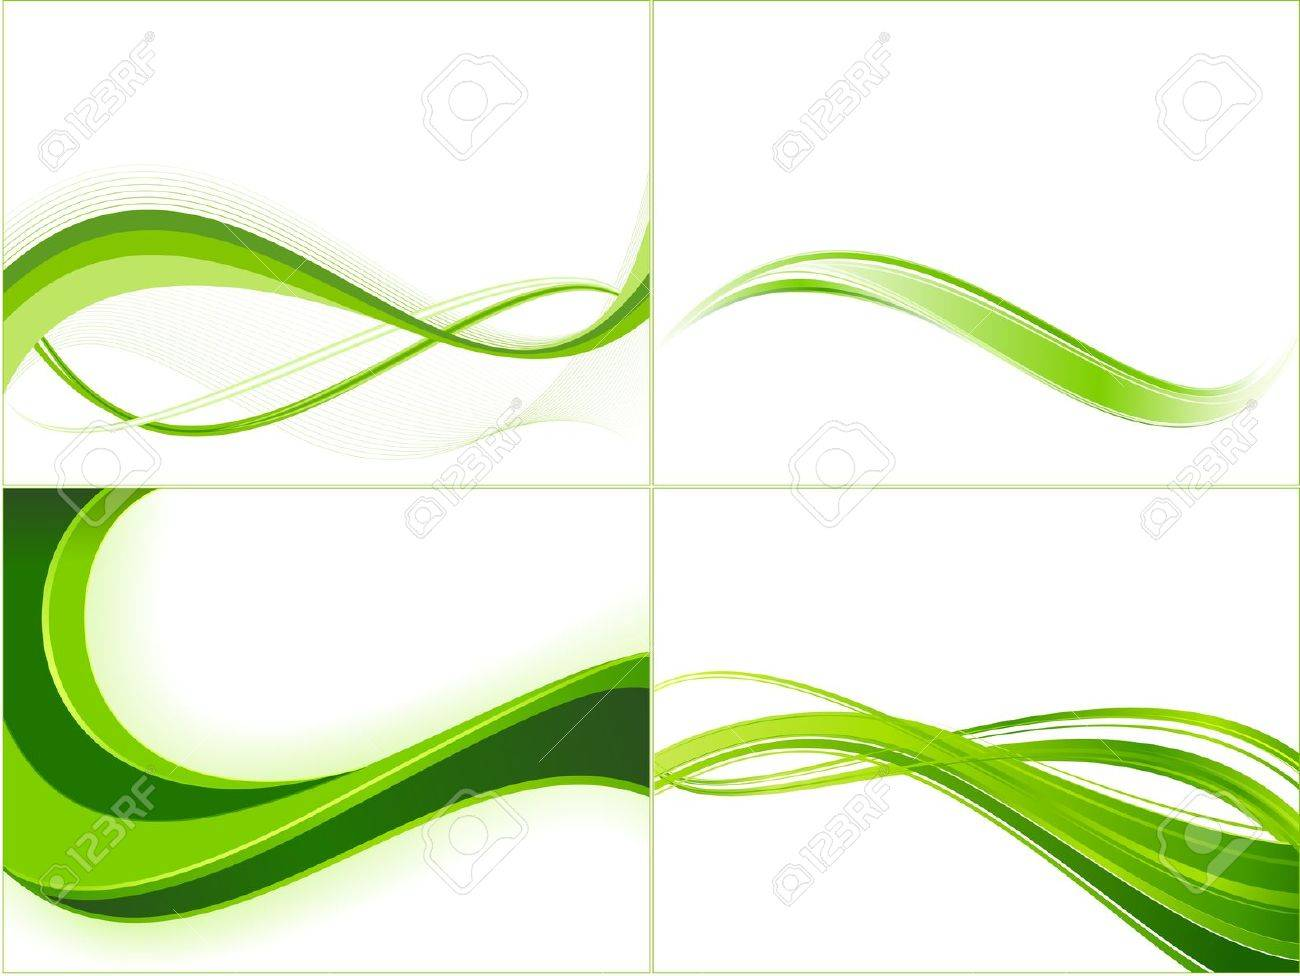 Background image linear gradient - Green Ecology Wave Background Template Abstract Background With Copy Space For Text Linear Gradients